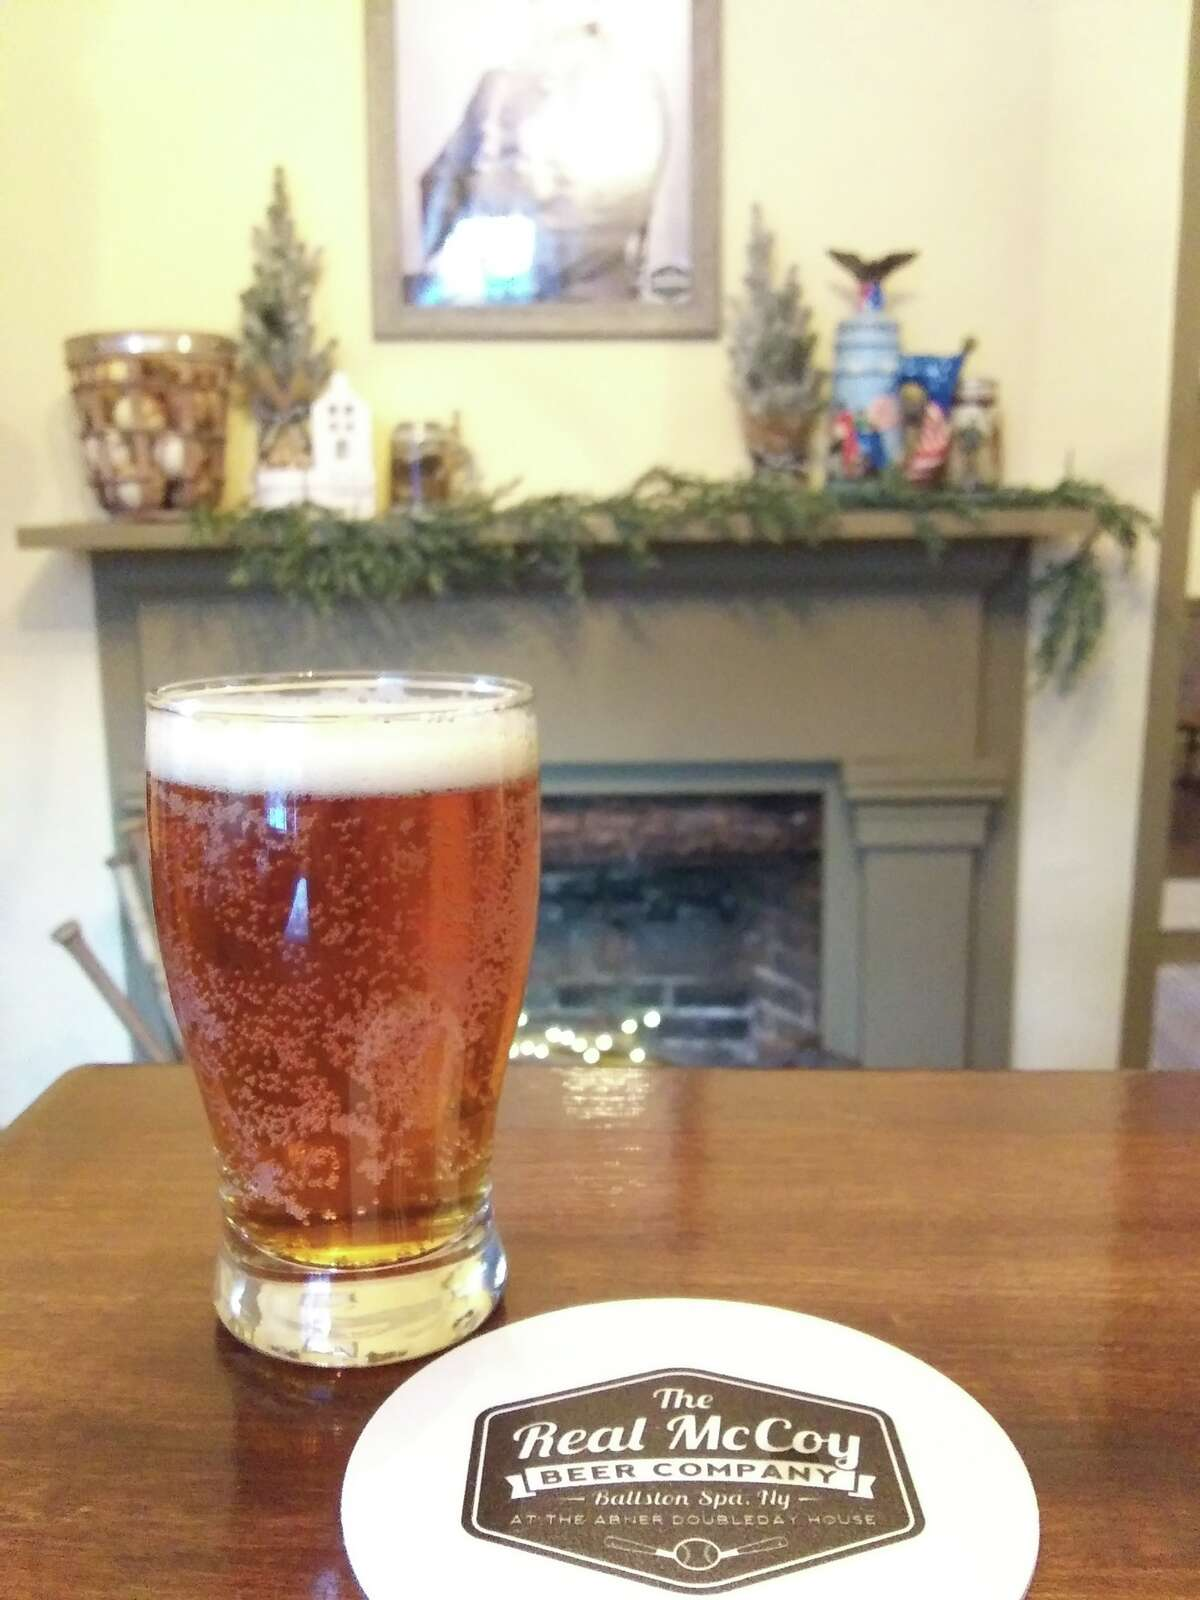 The Real McCoy Beer Co., founded as a microbrewery in Delmar in 2015, recently established a taproom in Ballston Spa's historic Abner Doubleday House,